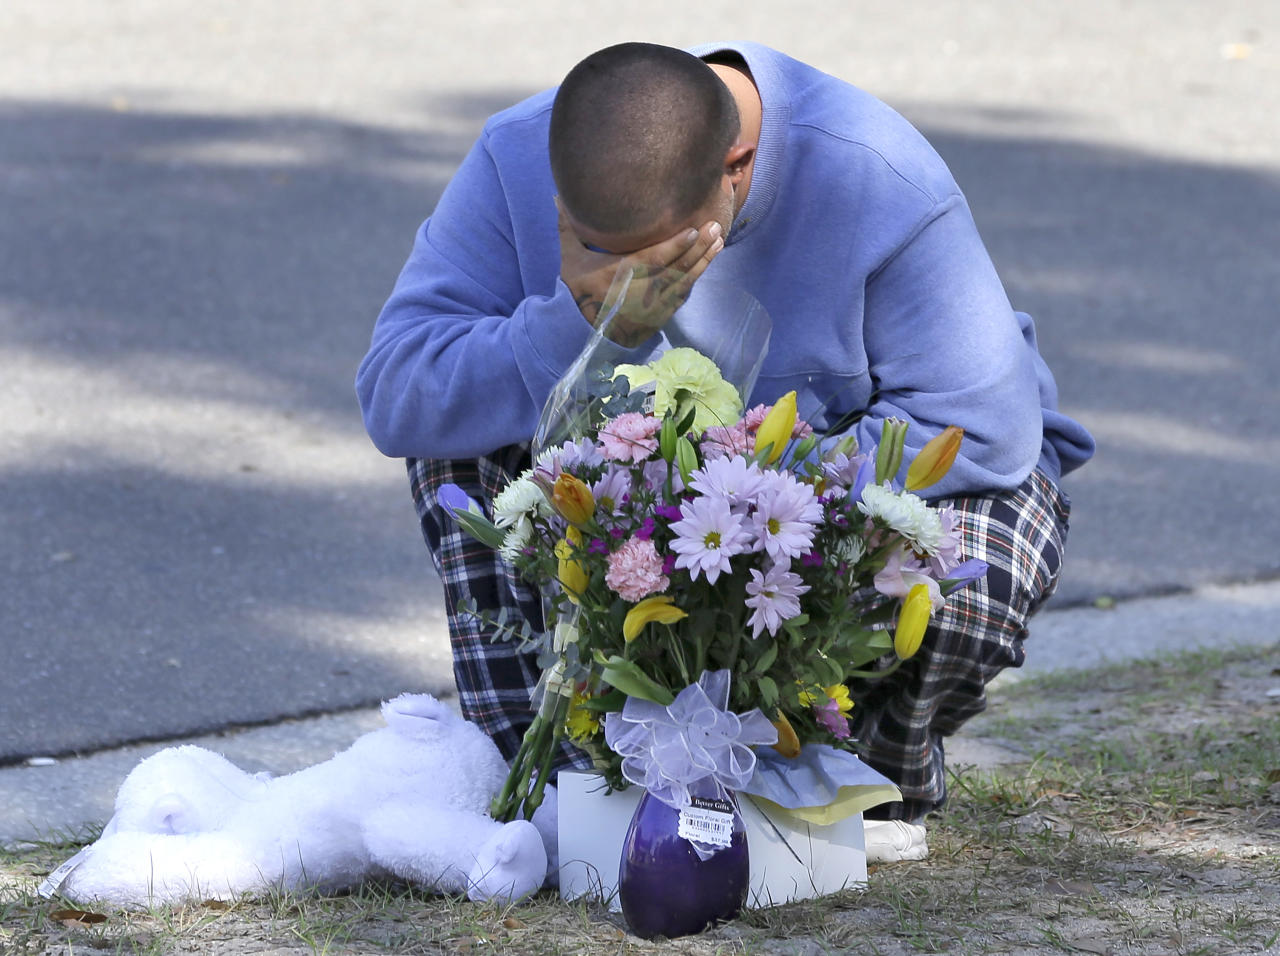 Jeremy Bush places flowers and a stuffed animal at a makeshift memorial in front of a home where a sinkhole opened up underneath a bedroom late Thursday evening and swallowed his brother Jeffrey in Seffner, Fla. on Saturday, March 2, 2013. Jeffrey Bush, 37, was in his bedroom Thursday night when the earth opened and took him and everything else in his room. Five other people were in the house but managed to escape unharmed. Bush's brother jumped into the hole to try to help, but he had to be rescued himself by a sheriff's deputy. (AP Photo/Chris O'Meara)